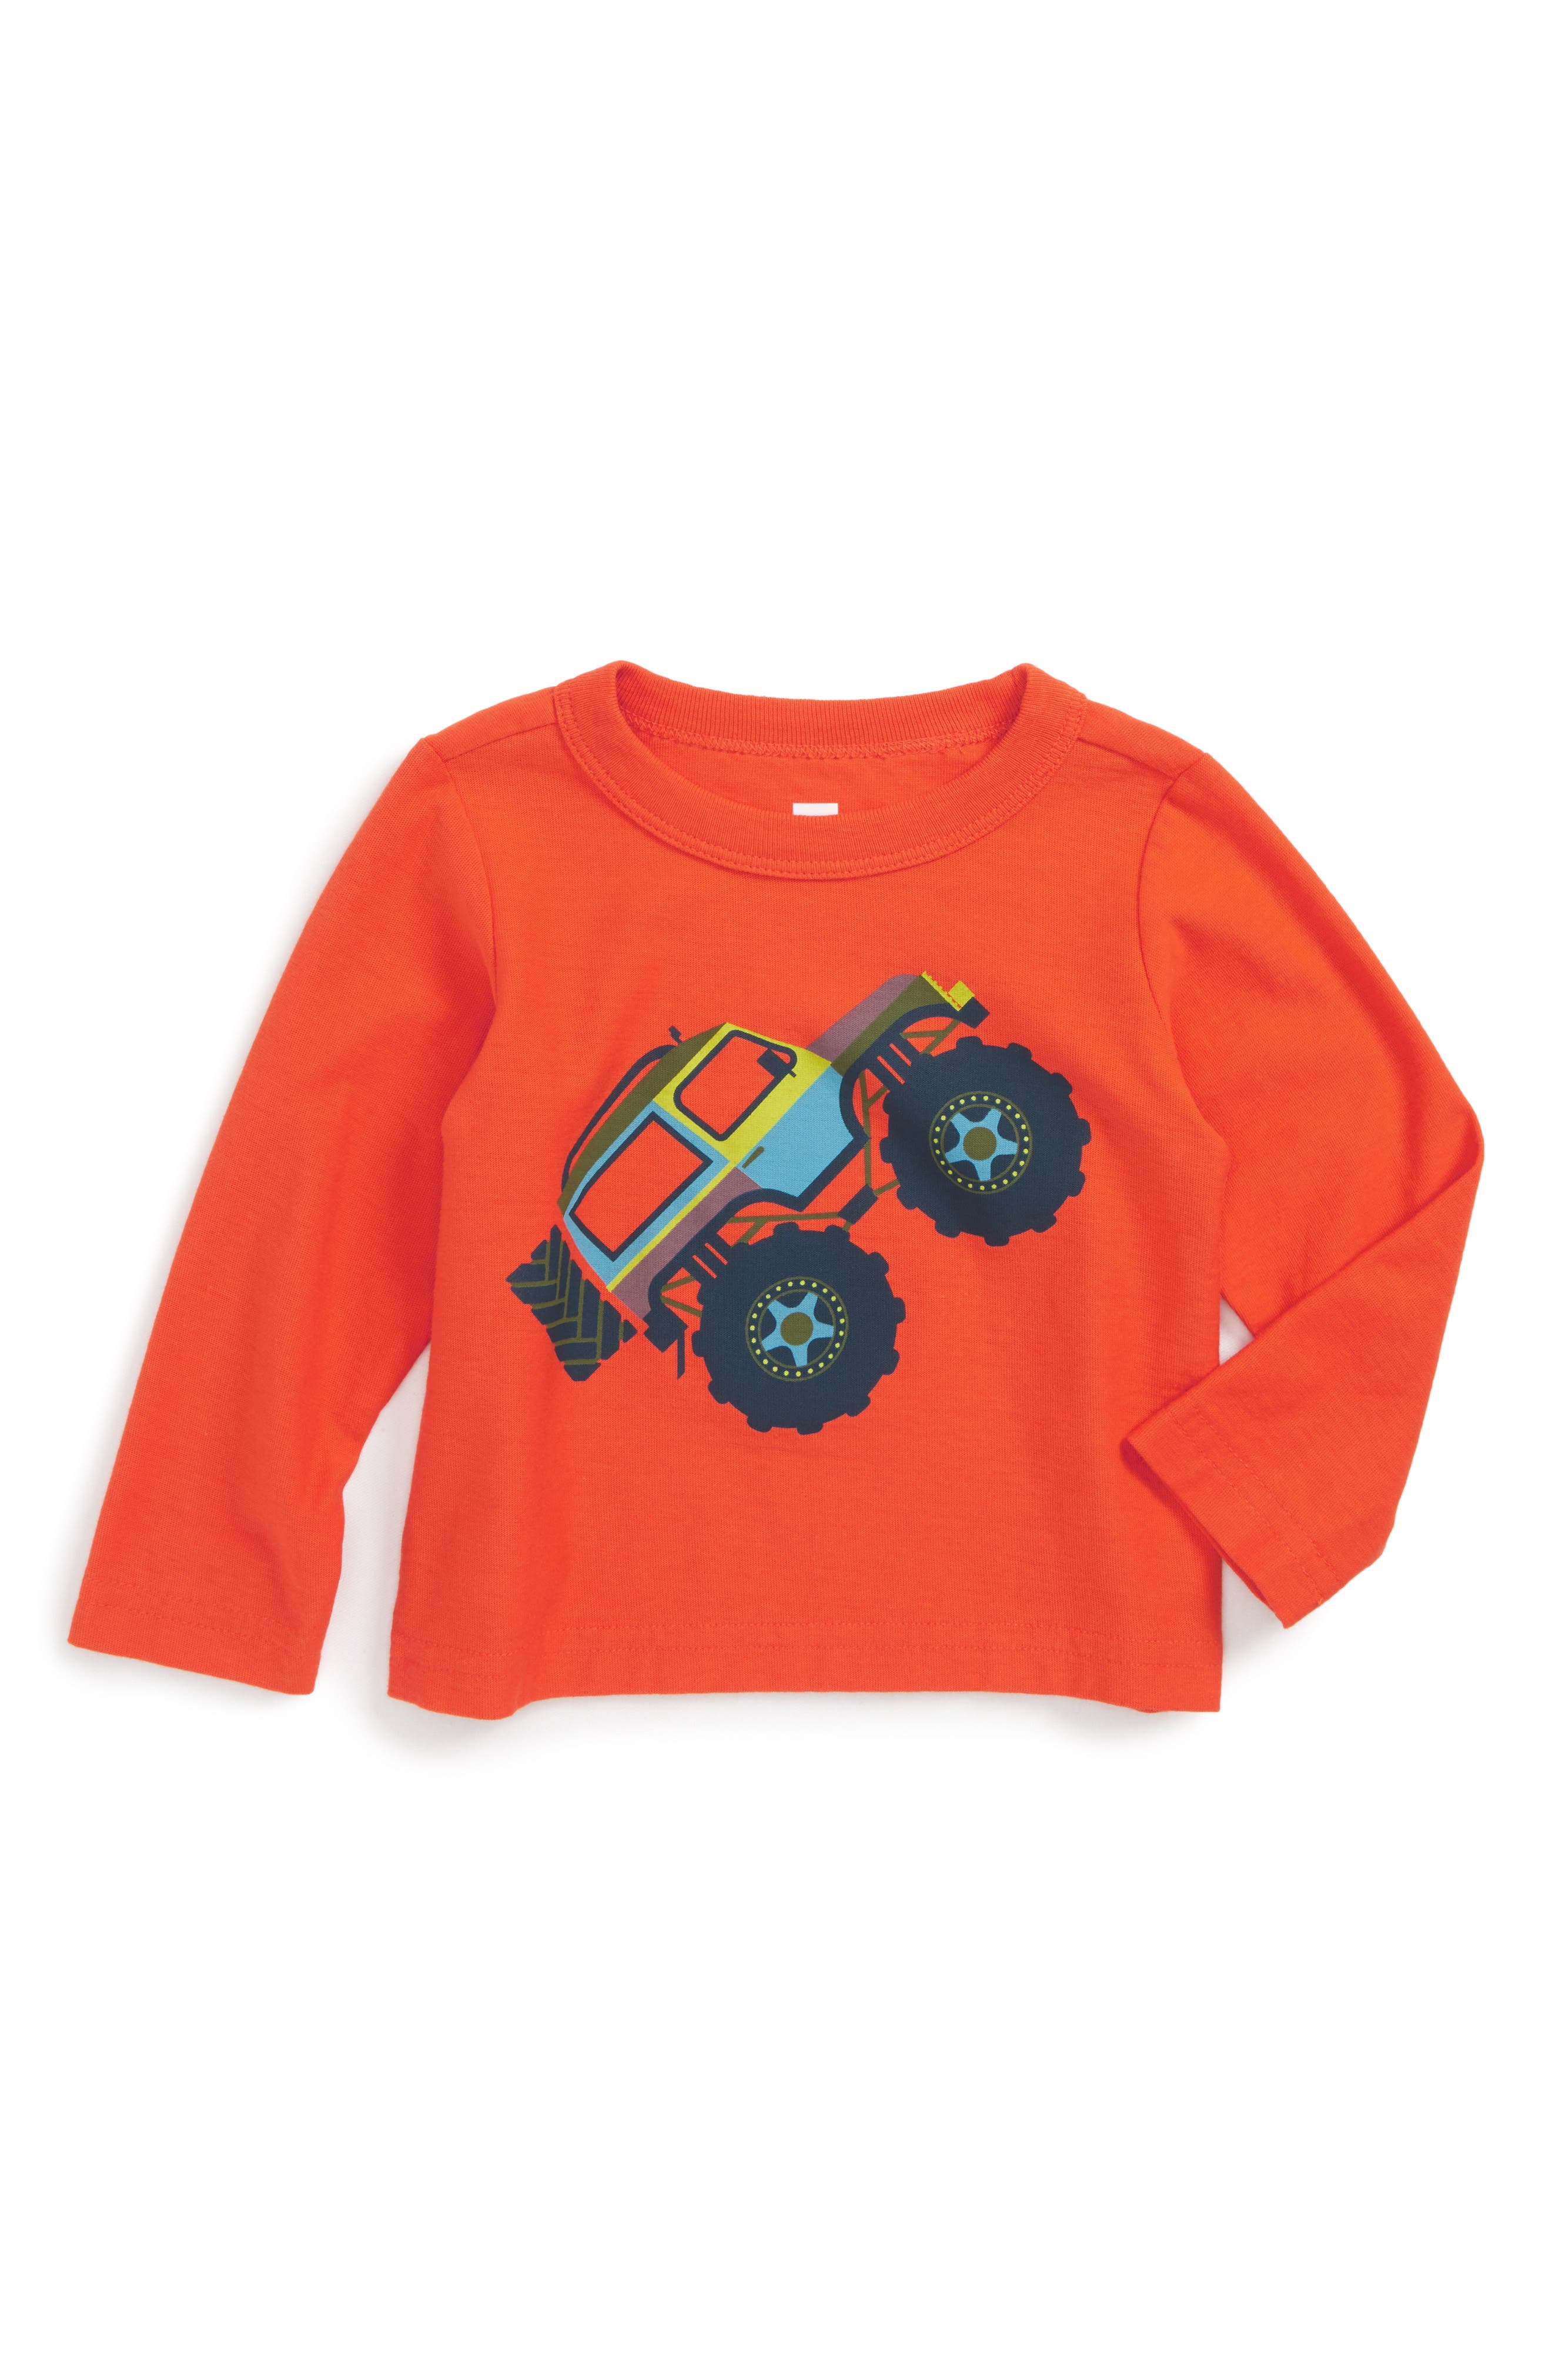 Tea Collection Ward Hill Graphic T-Shirt (Baby Boys)